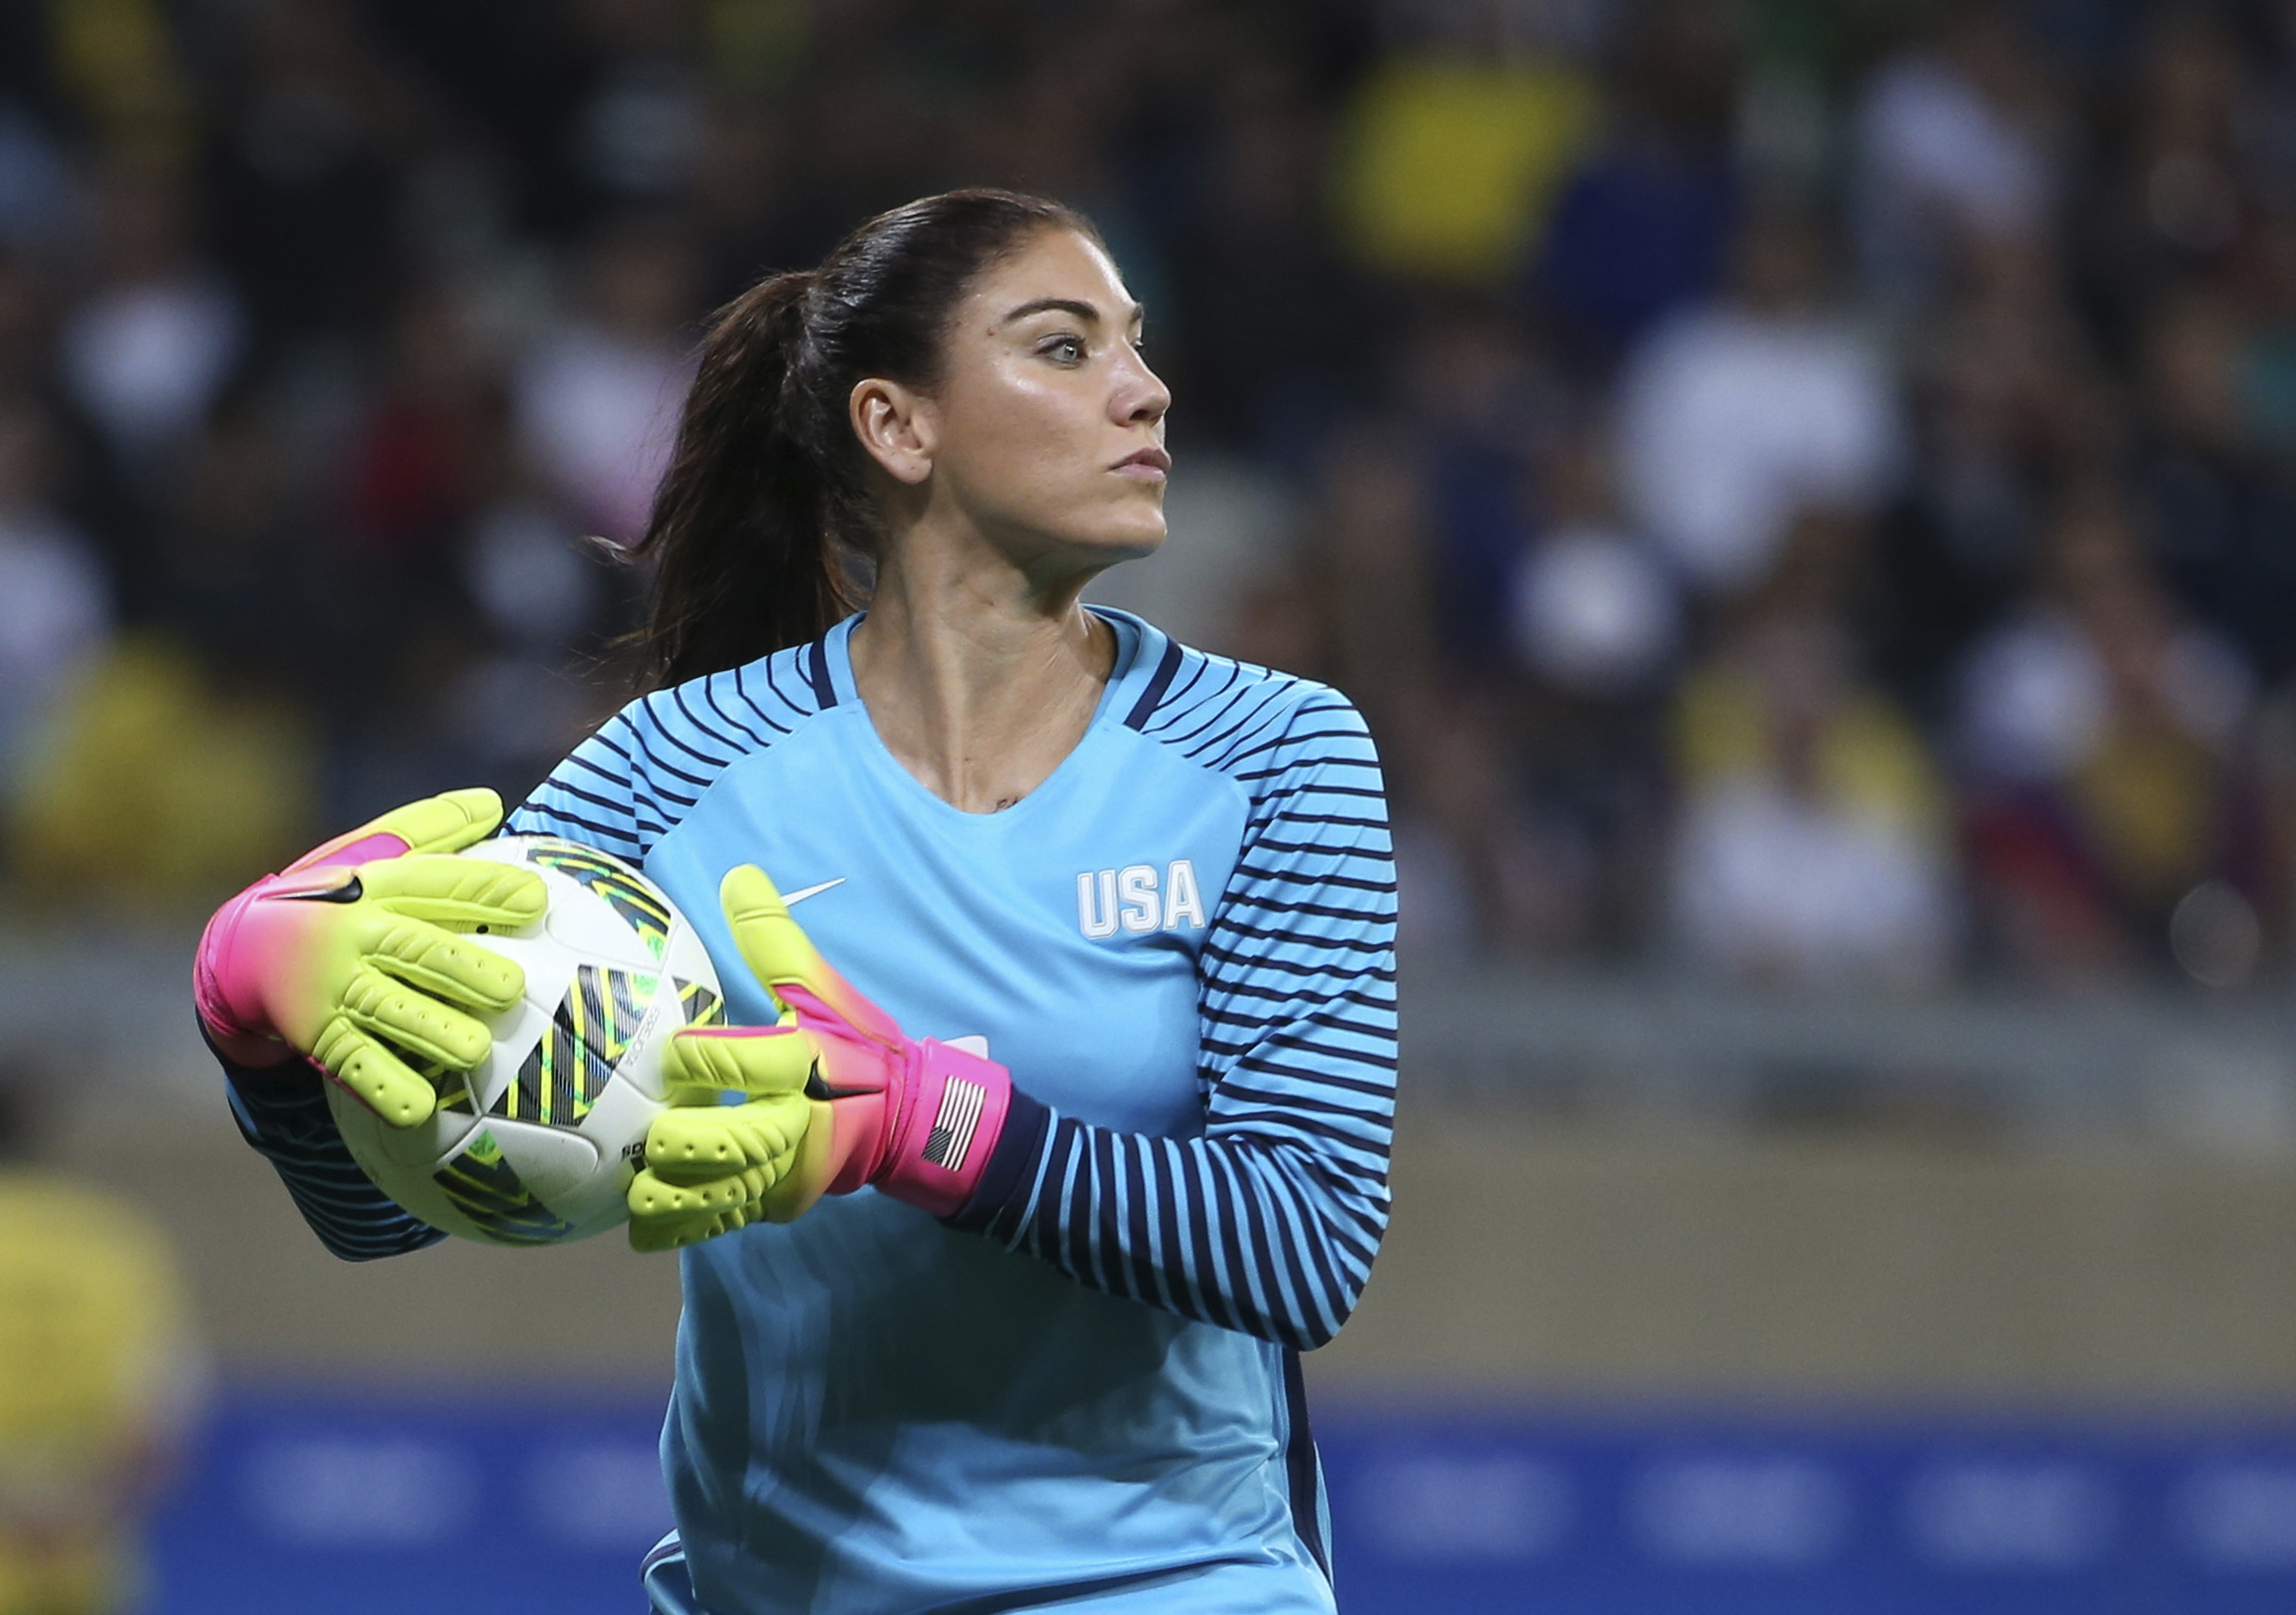 FILE - In this Aug. 3, 2016, file photo, U.S. goalkeeper Hope Solo takes the ball during a women's Olympic football tournament match against New Zealand in Belo Horizonte, Brazil. Solo has been suspended form the team for six months for what U.S. Soccer t